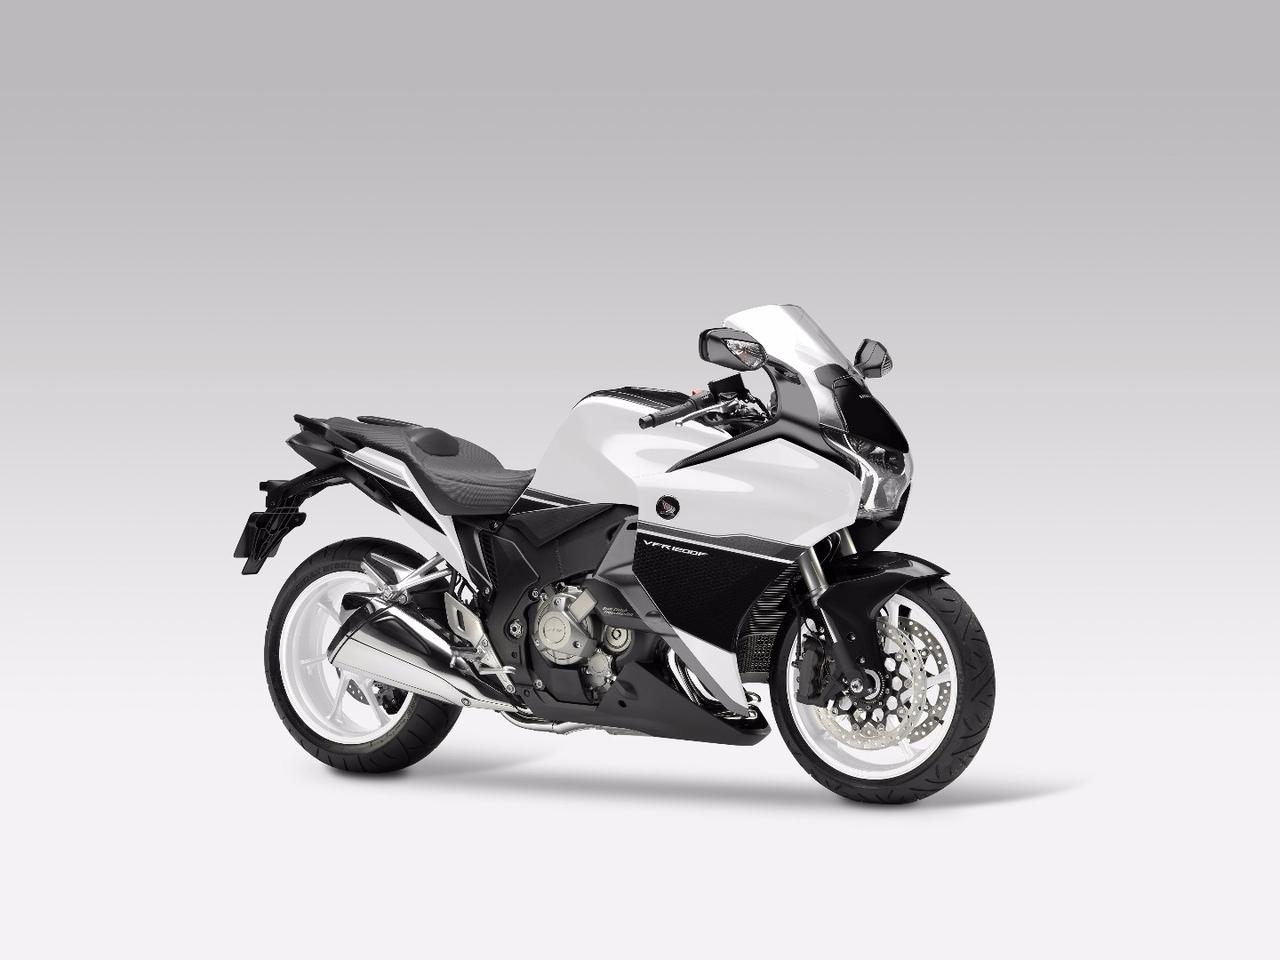 The stock Honda VFR1200F - here shown in the DCT version - offered the foundation for the Burasca